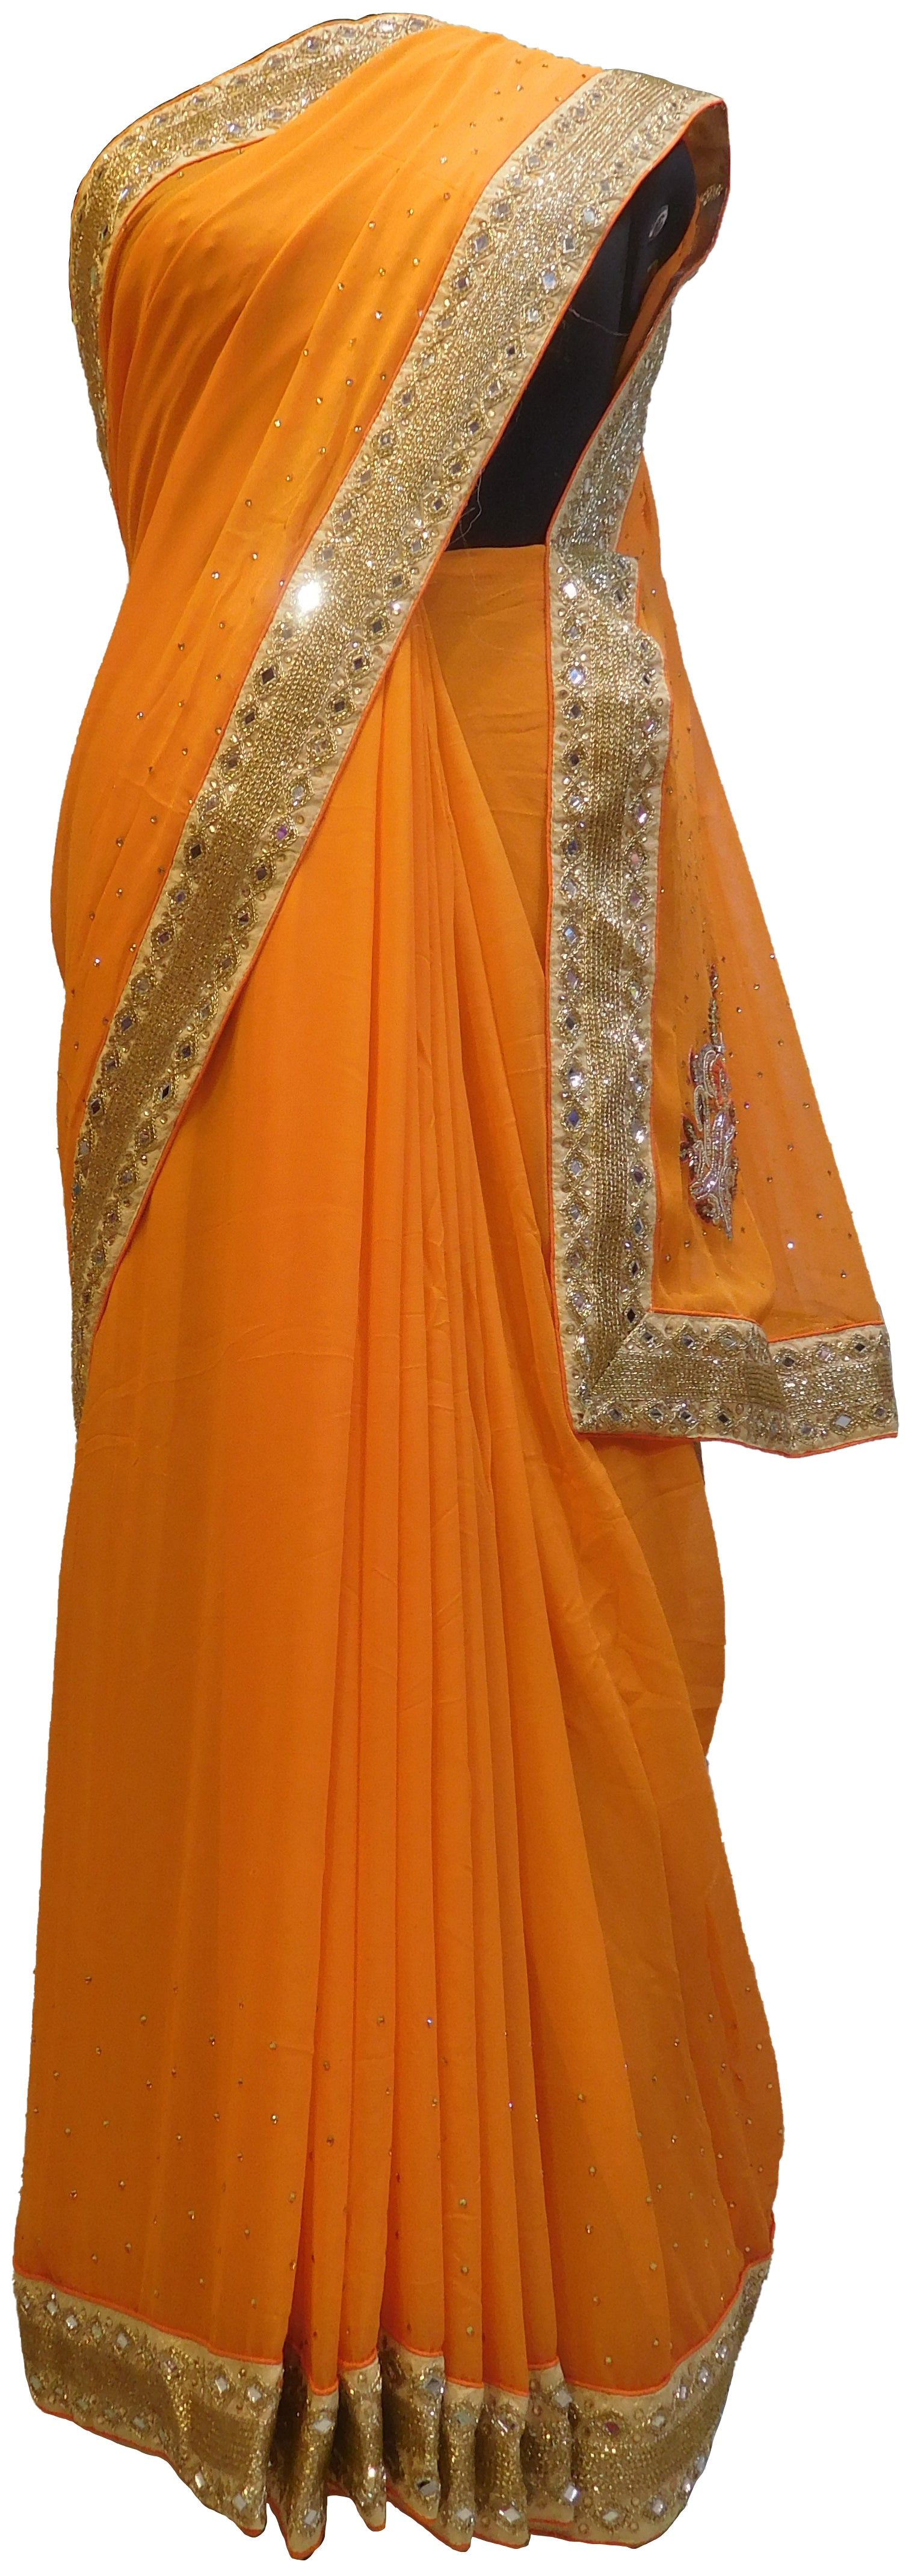 SMSAREE Orange Designer Wedding Partywear Georgette (Viscos) Stone Zari Cutdana Mirror & Thread Hand Embroidery Work Bridal Saree Sari With Blouse Piece E480